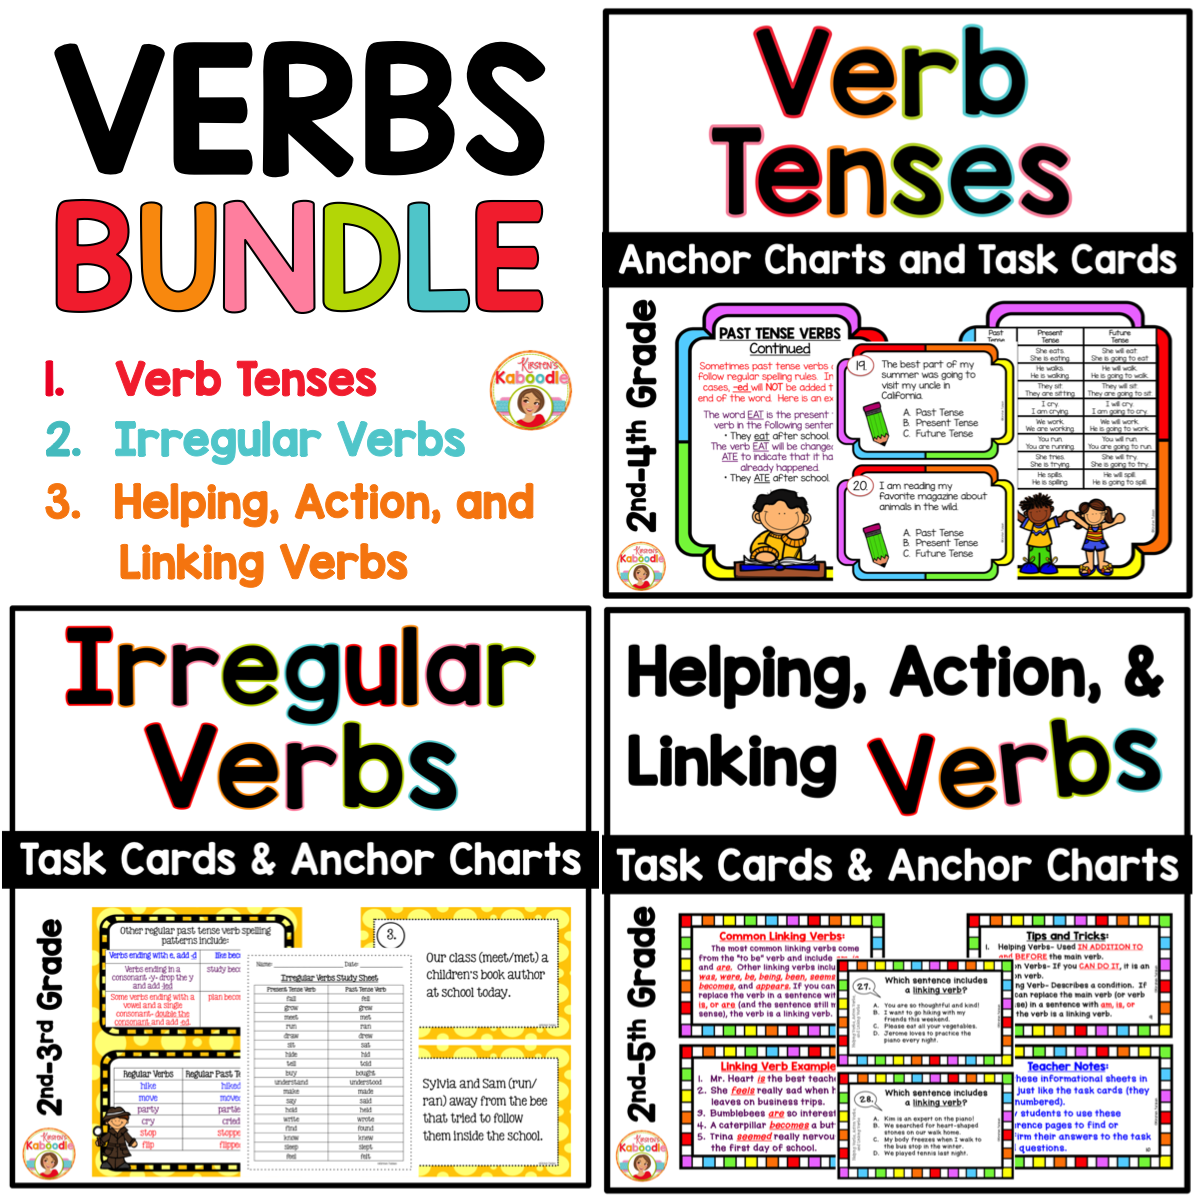 Verbs Bundle Verb Tenses Irregular And Helping Action Linking Task Cards Anchor Charts